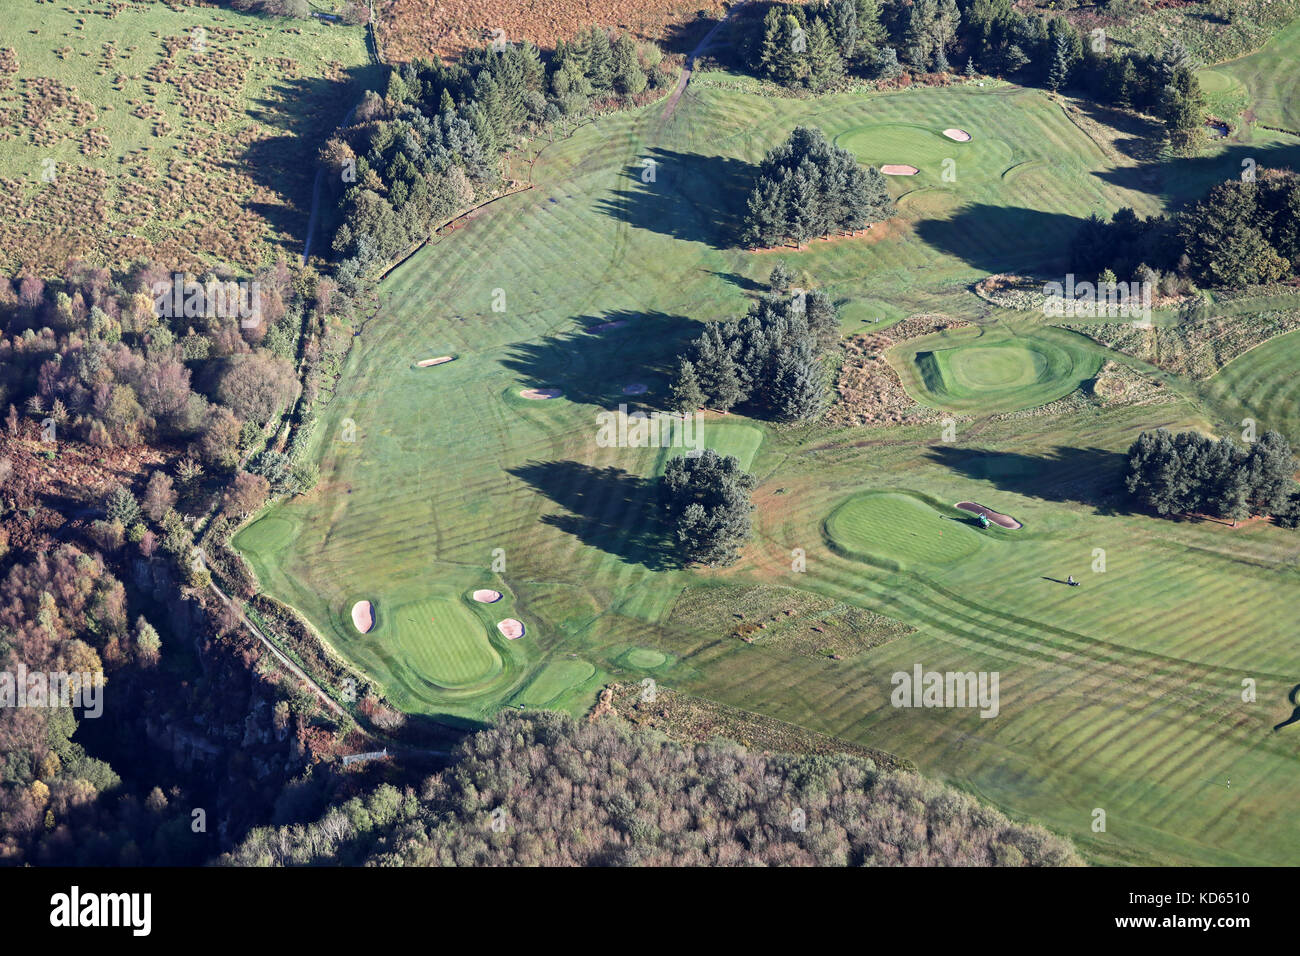 aerial view of a golf hole with fairway, green & bunkers, Lancashire, UK - Stock Image